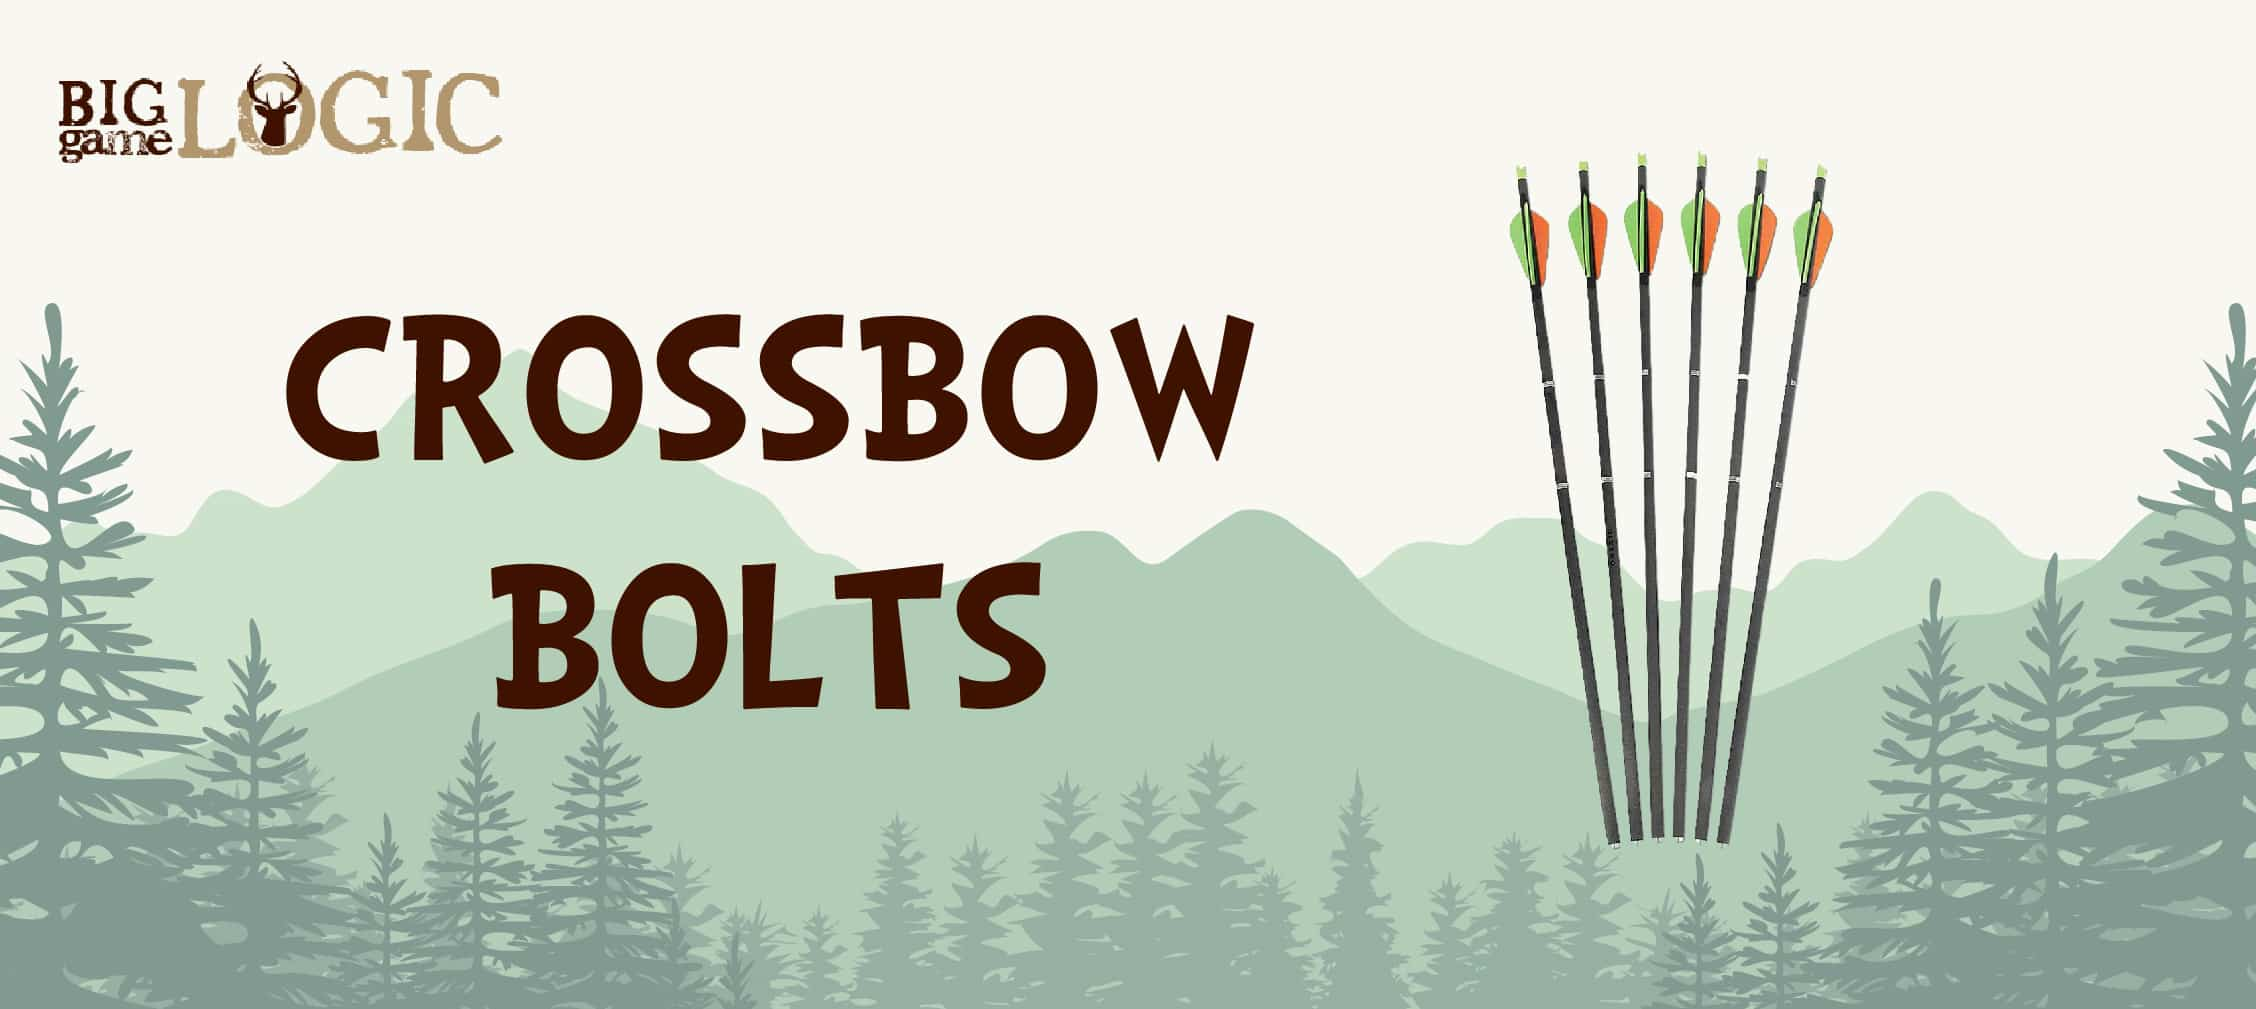 Best Crossbow Bolts of 2019 – Complete Review - Big Game Logic